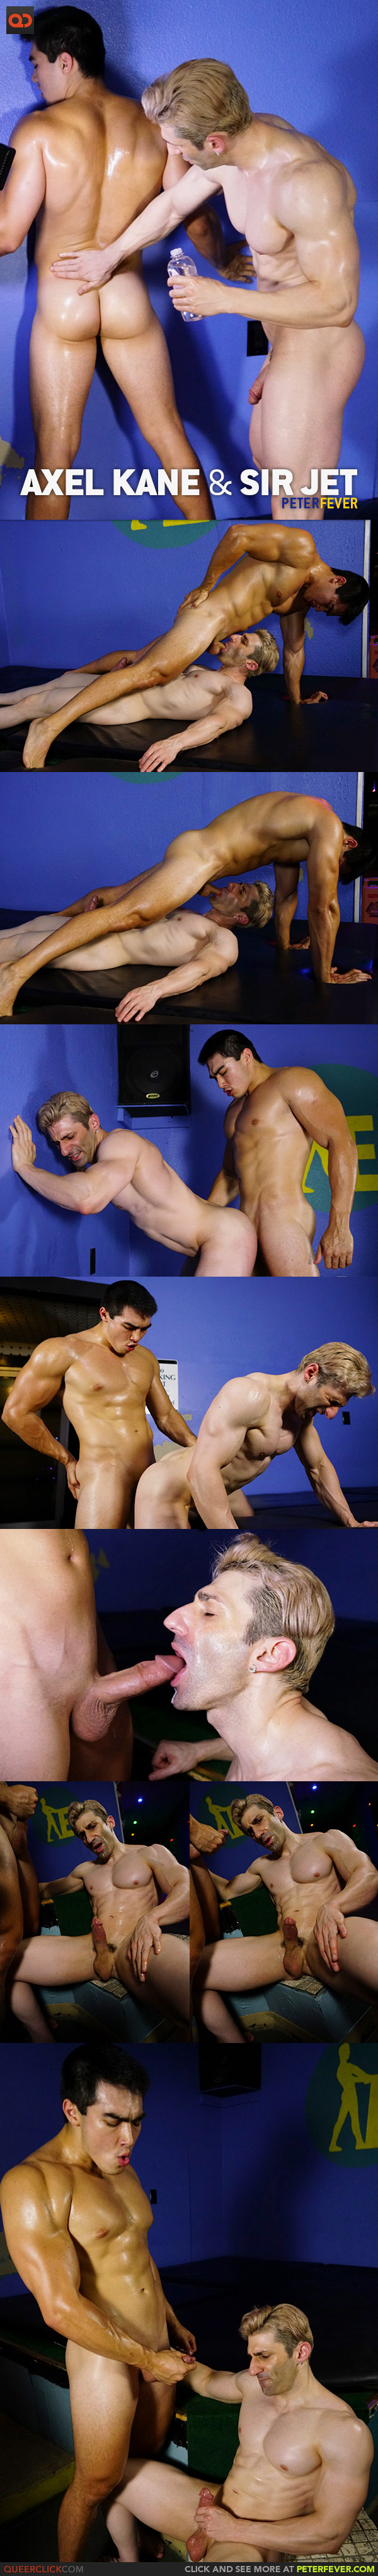 Peter Fever: Axel Kane And Sir Jet